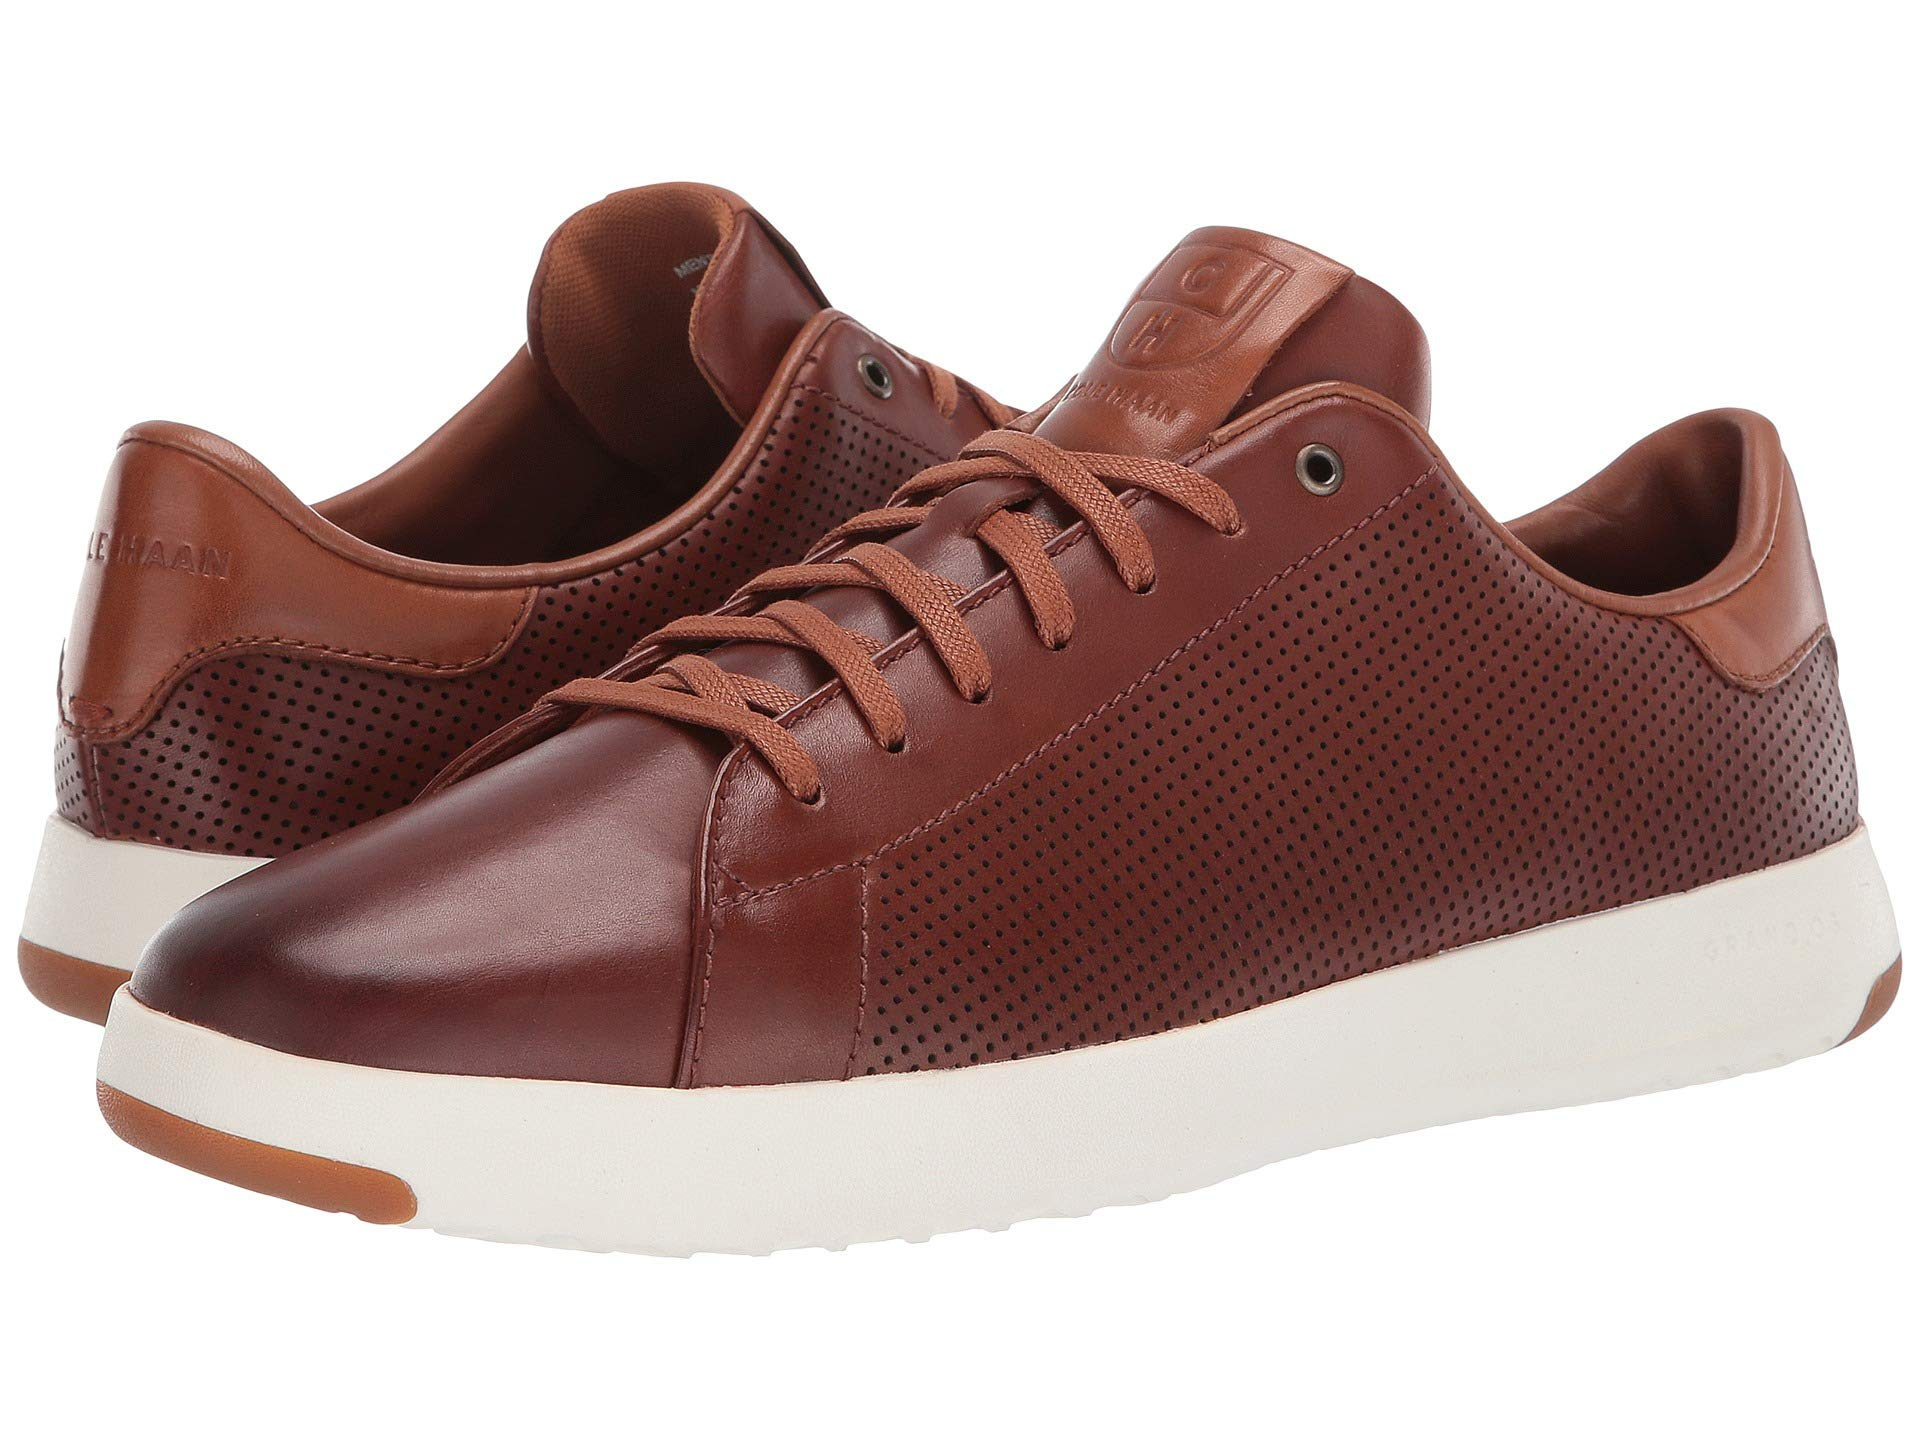 Cole Haan Mens Grandpro Tennis Sneaker 7 Woodbury Handstained Leather by Cole Haan (Image #7)